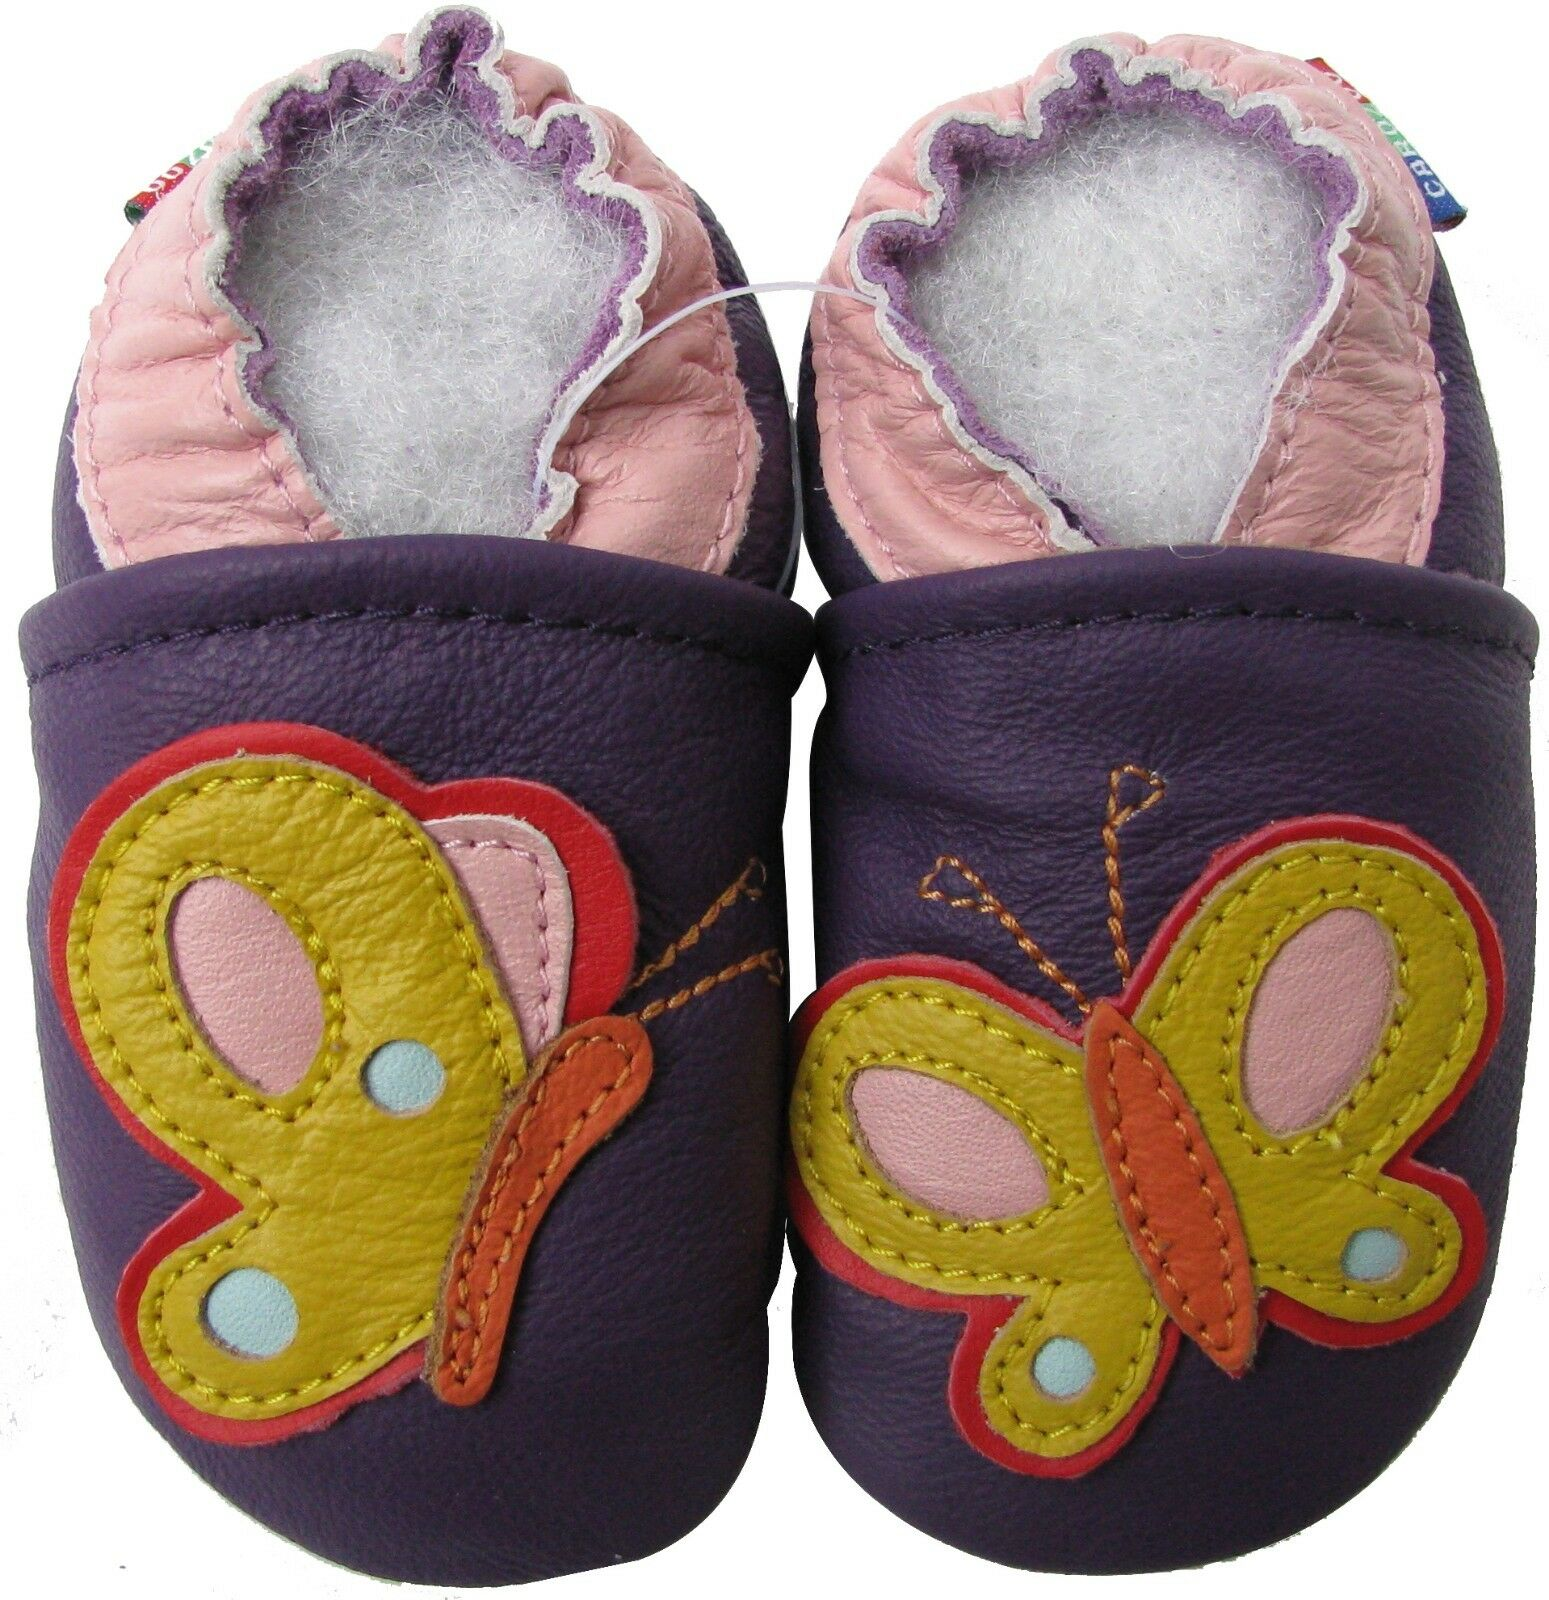 carozoo cow brown 18-24m C1 soft sole leather baby shoes slippers